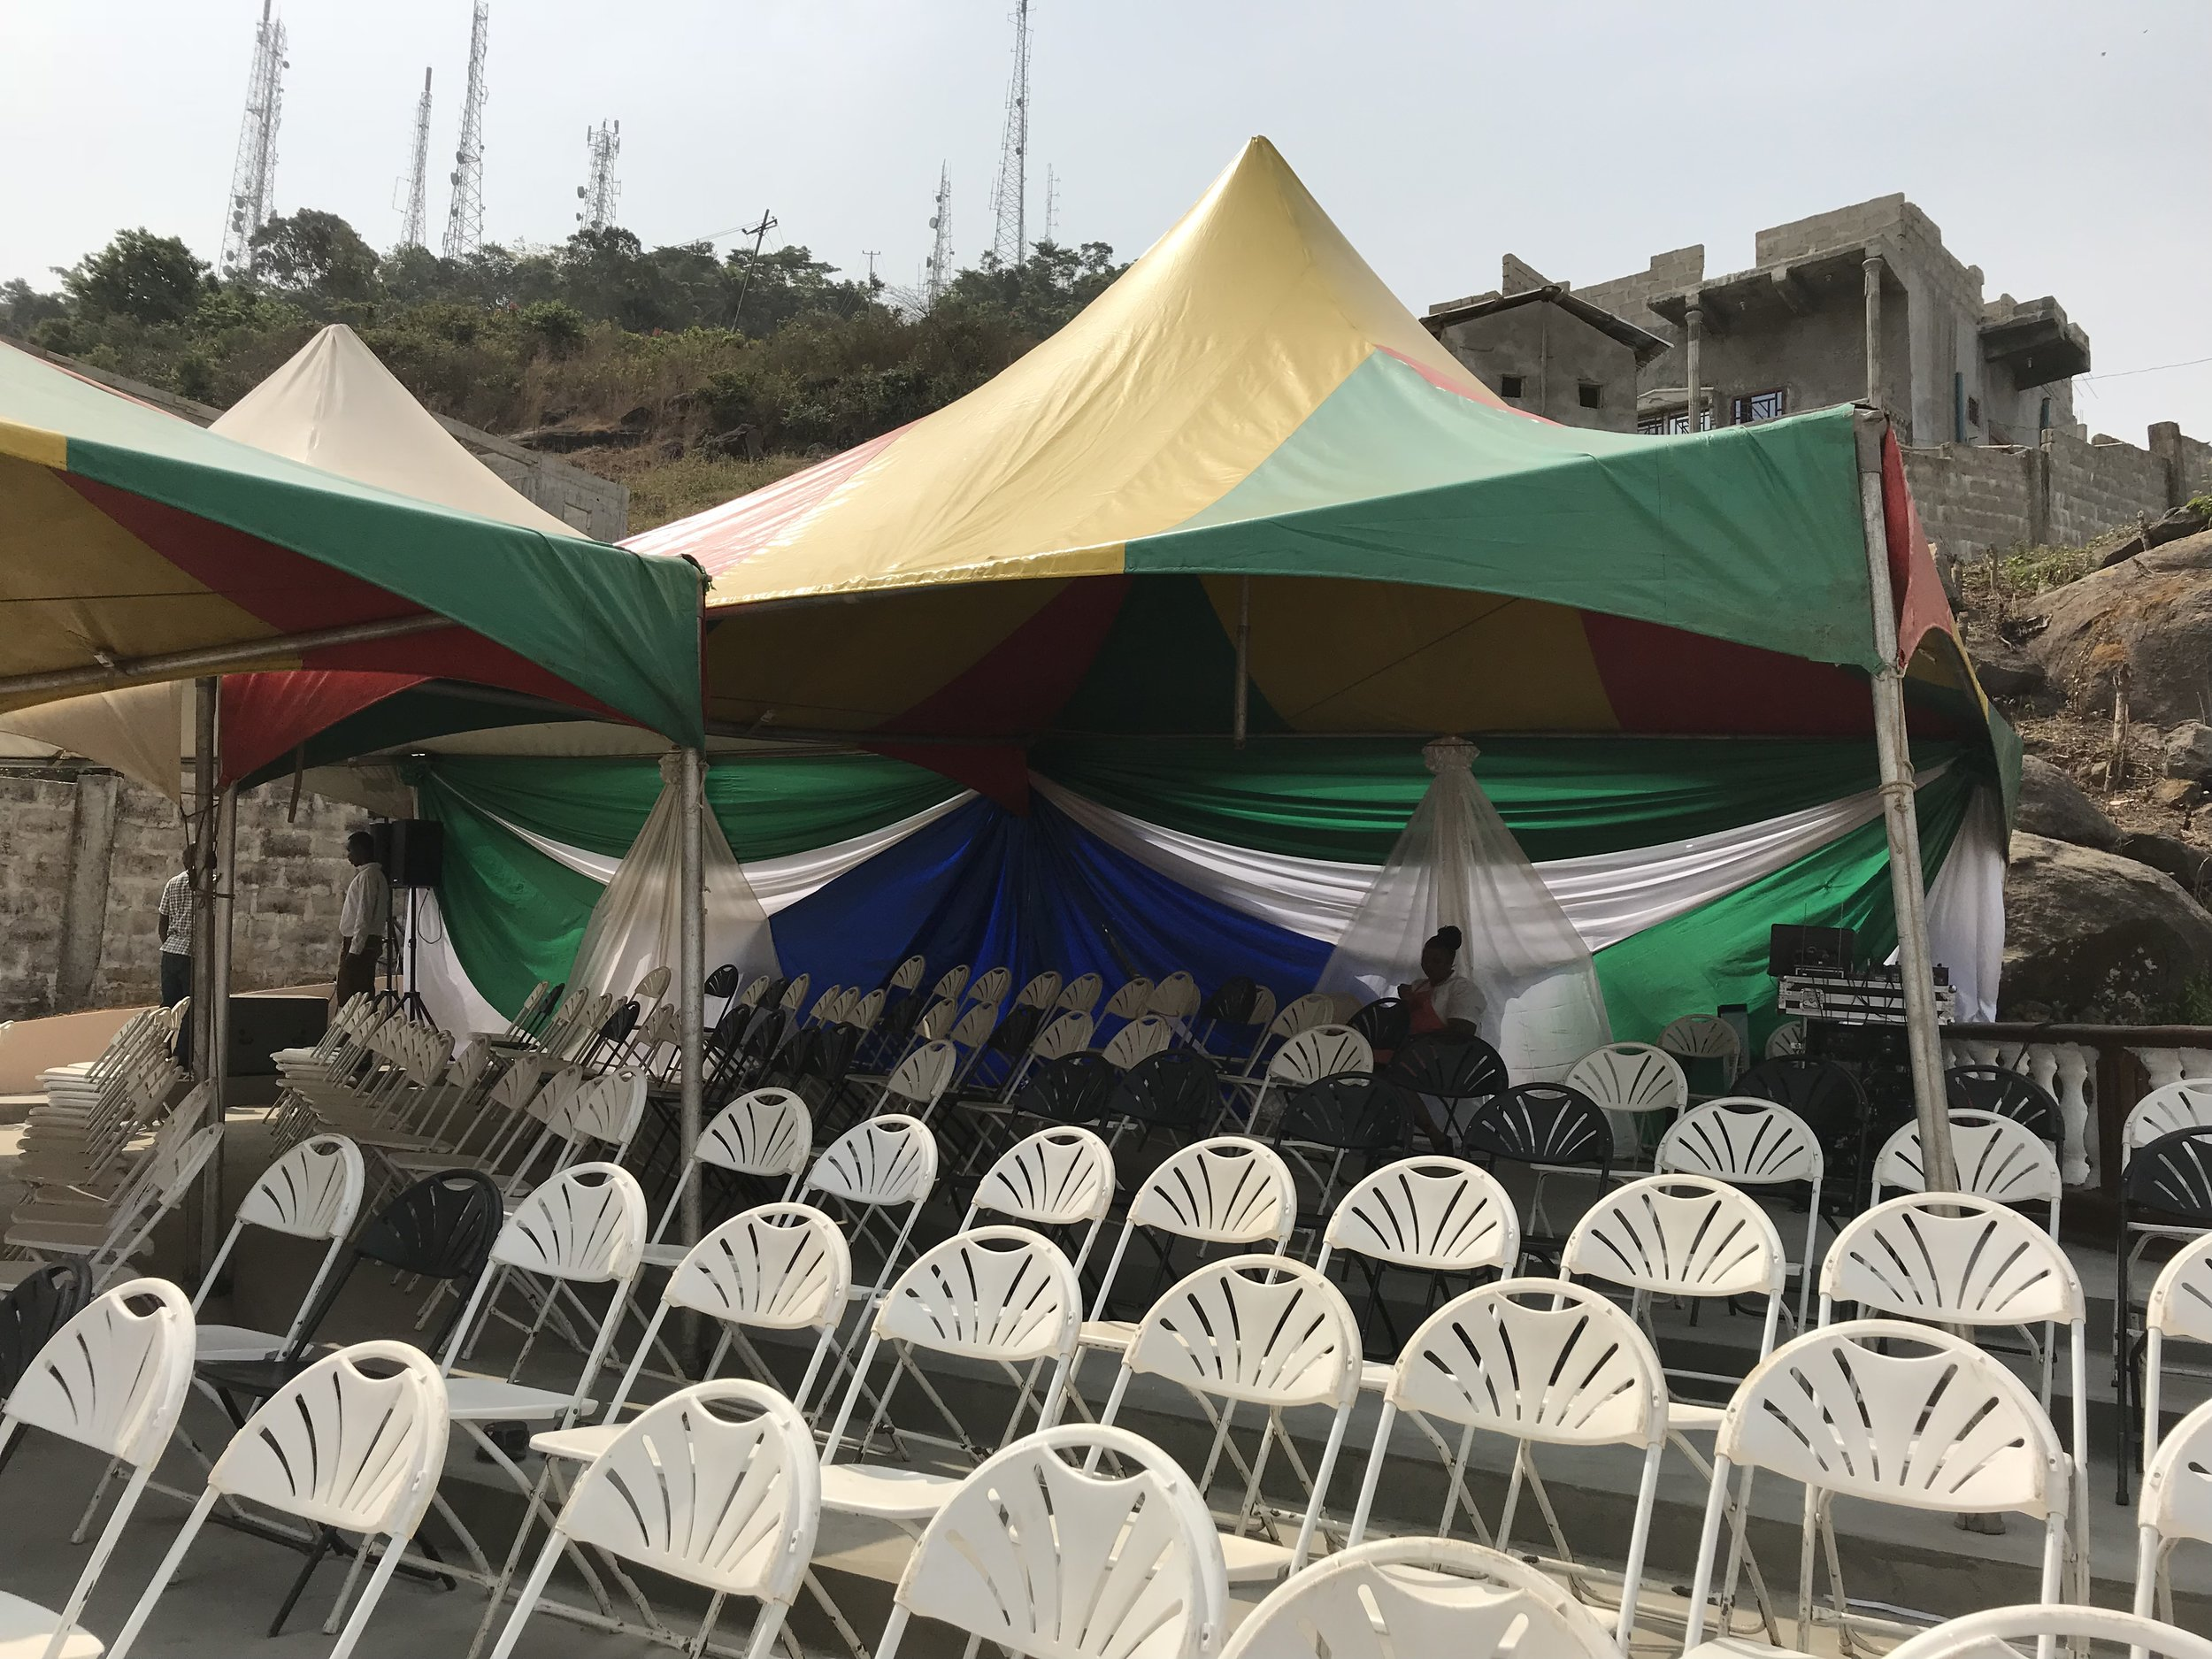 The amphitheater all decorated and ready for guests